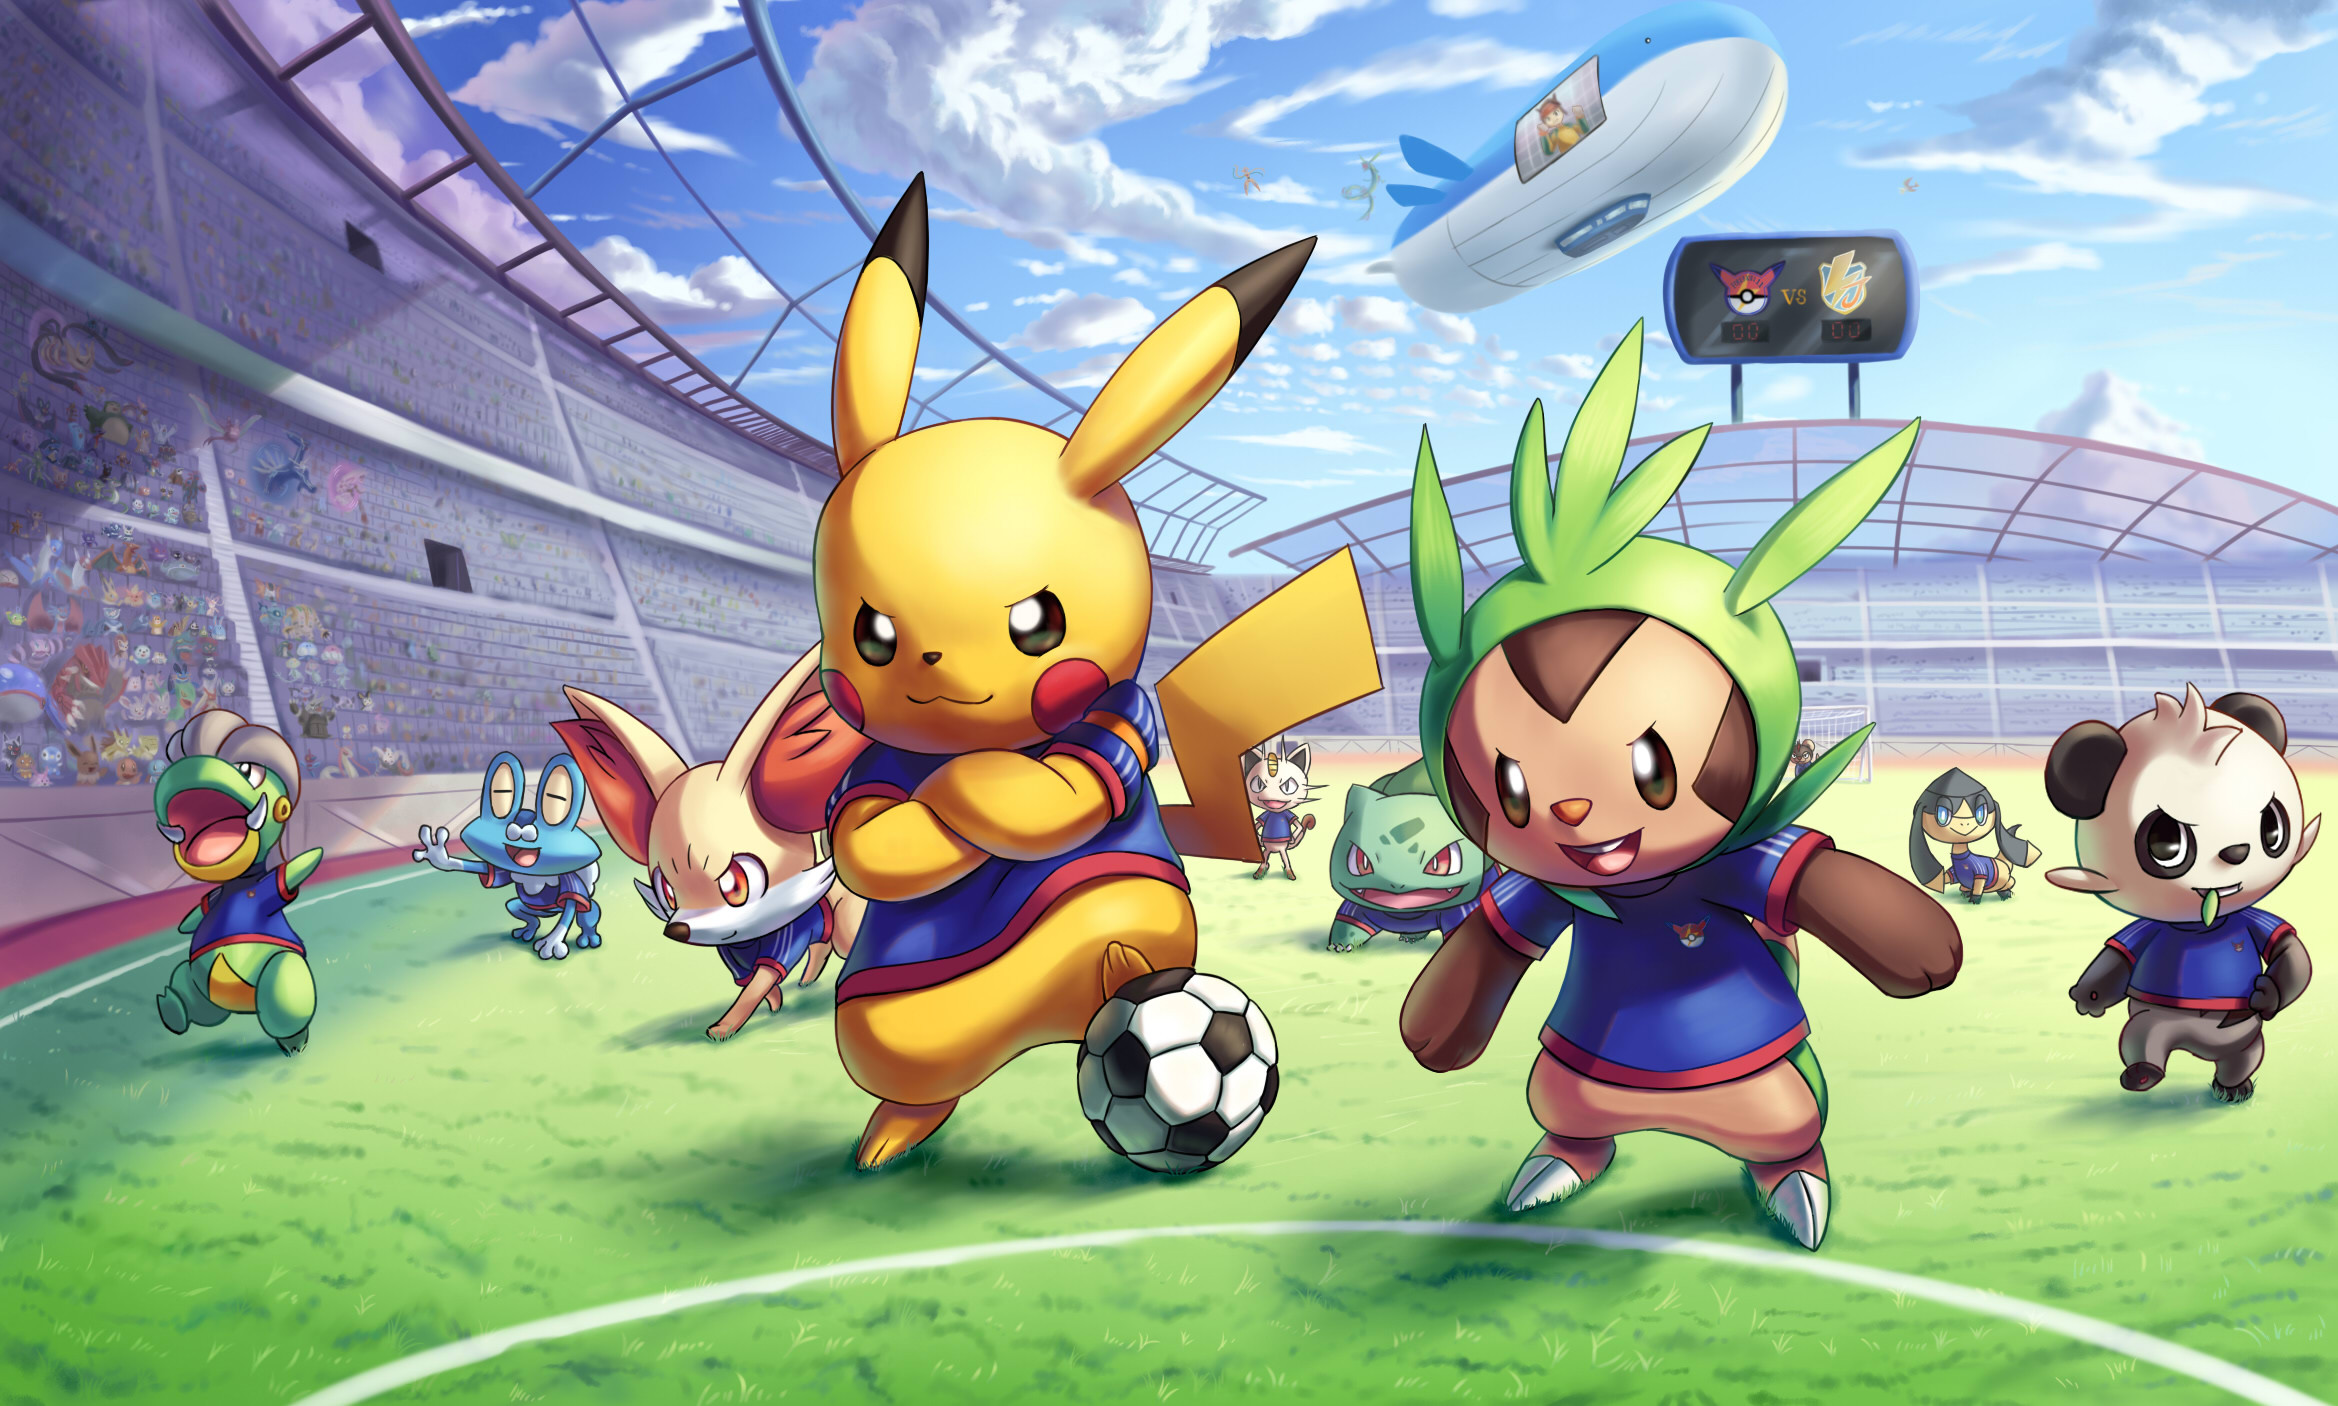 2338x1406 pokemon playing football backgrounds desktop wallpapers high definition  monitor download free amazing background photos artwork 2338×1406 Wallpaper  HD